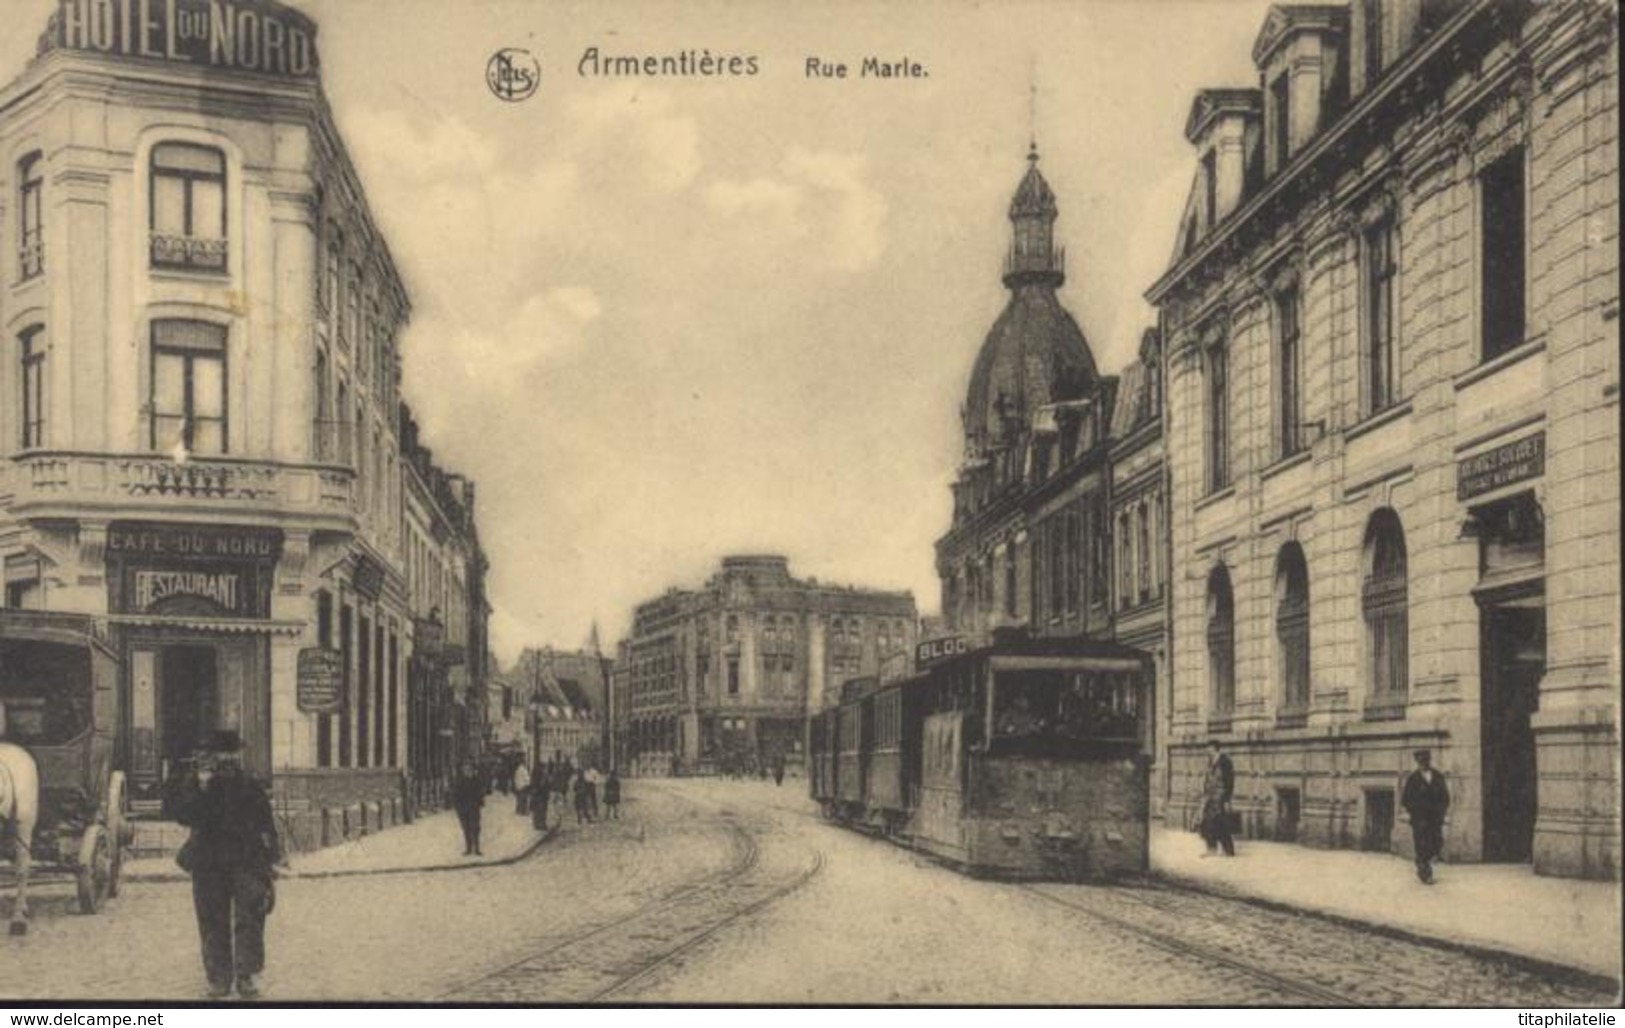 CPA Armentières Rue Marie Tramway KD Feldpost 7 8 1 Occupation Allemande Guerre 14 18 Phono Photo Tournai - Armentieres